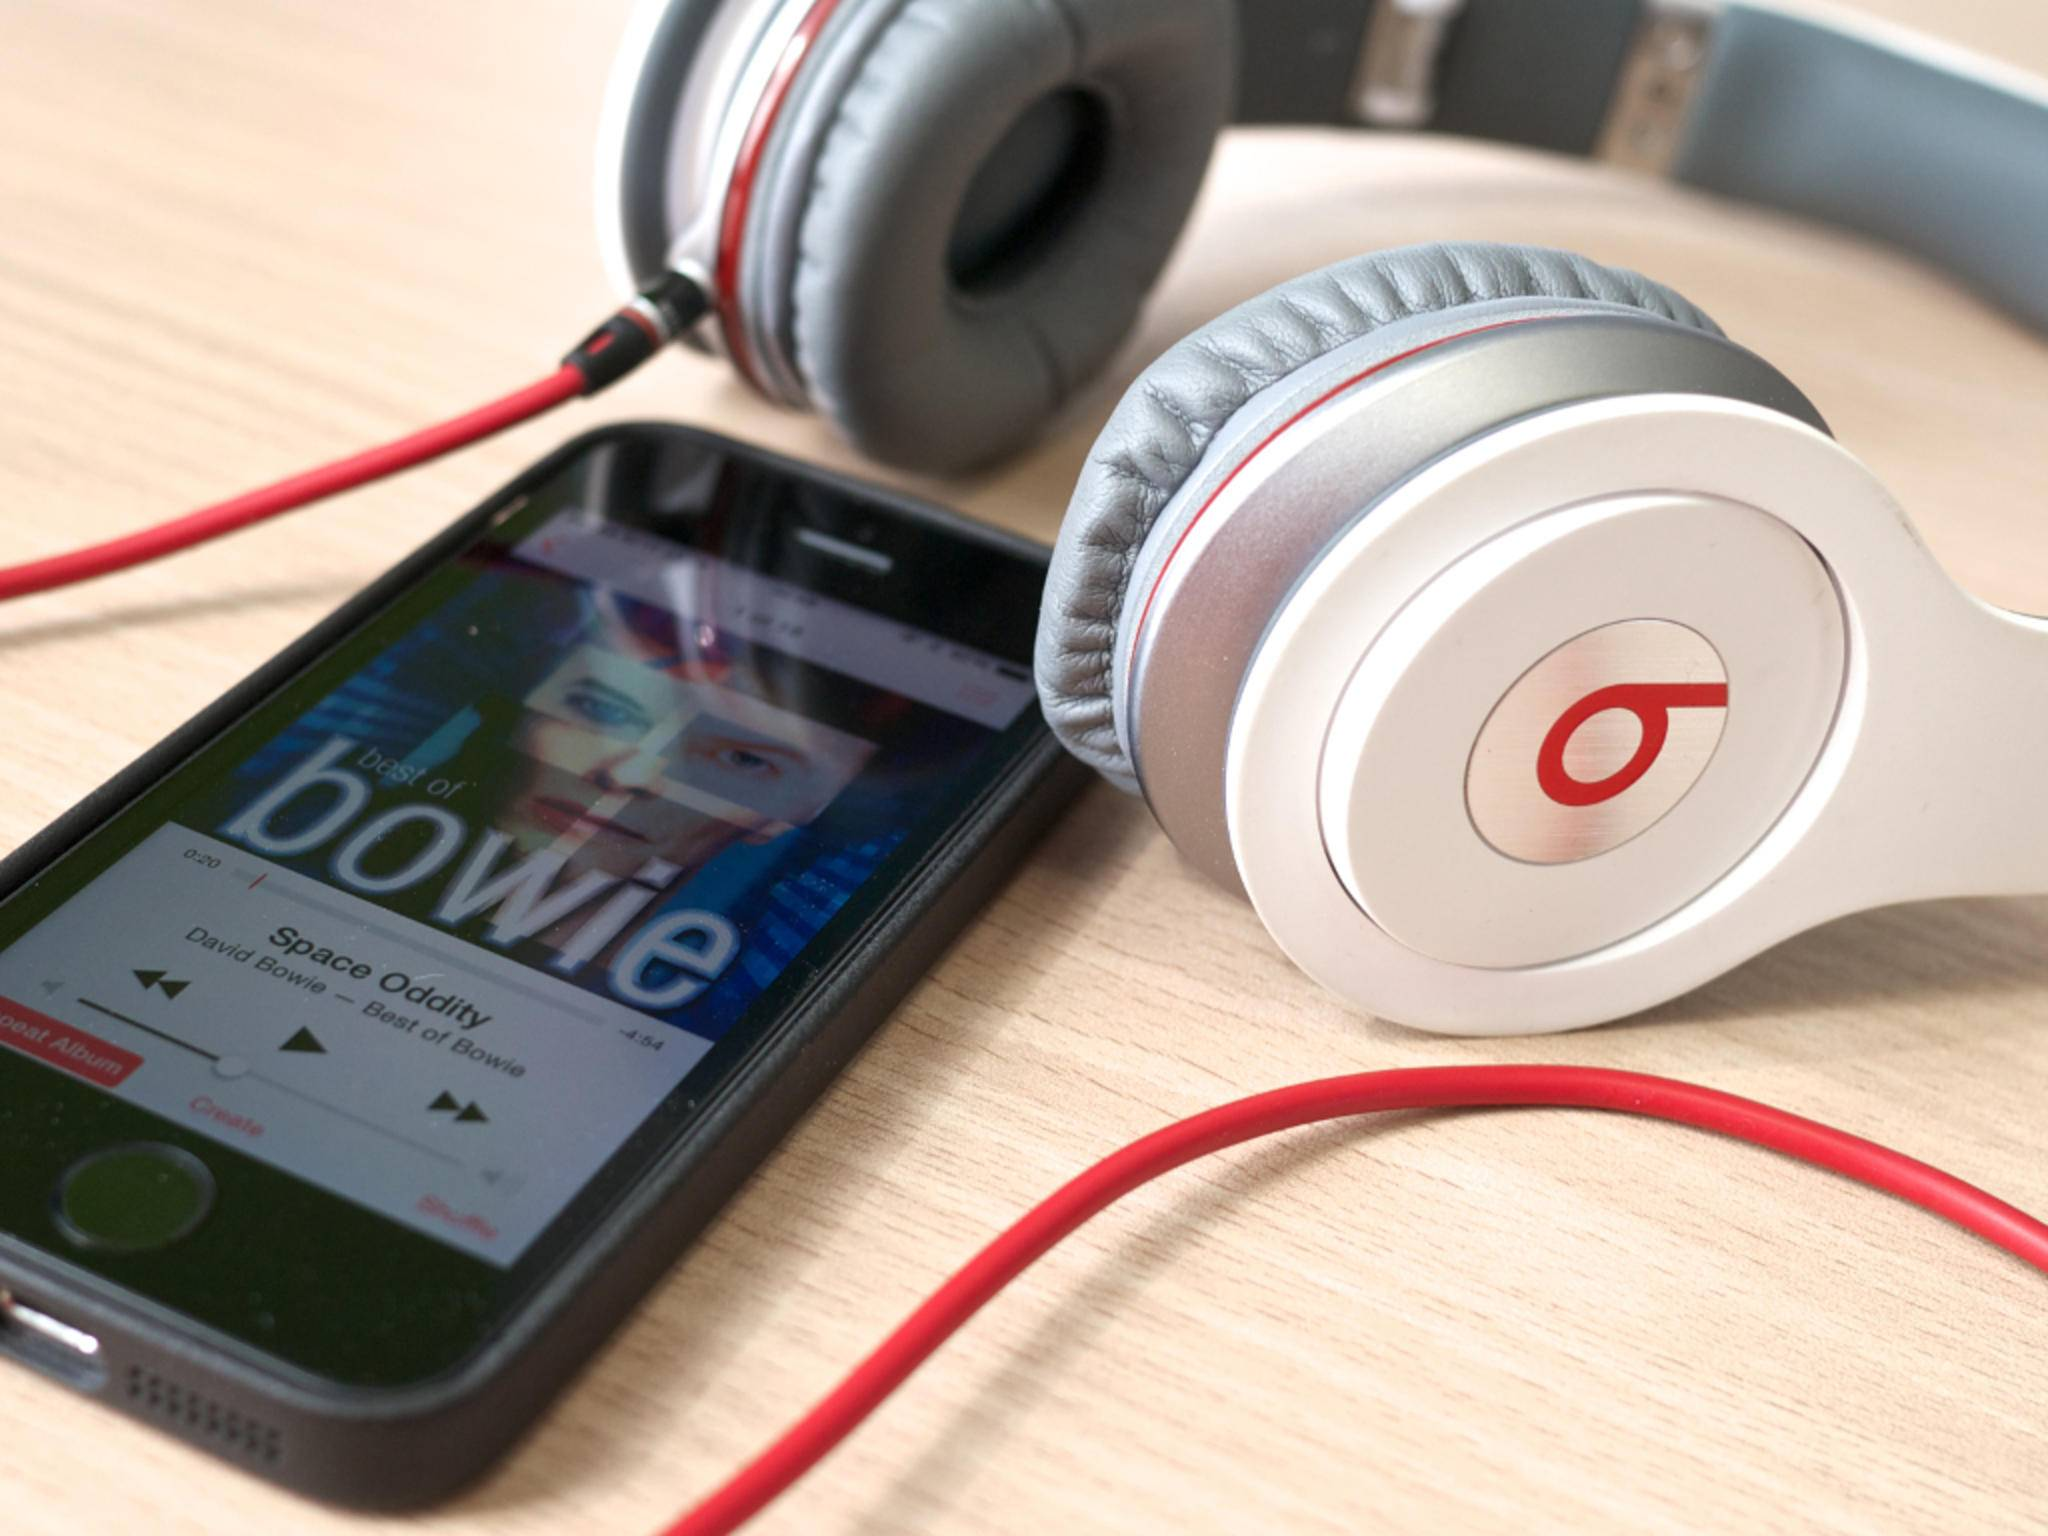 Apple könnte den Streaming-Dienst Beats Music 2015 direkt in iOS integrieren.